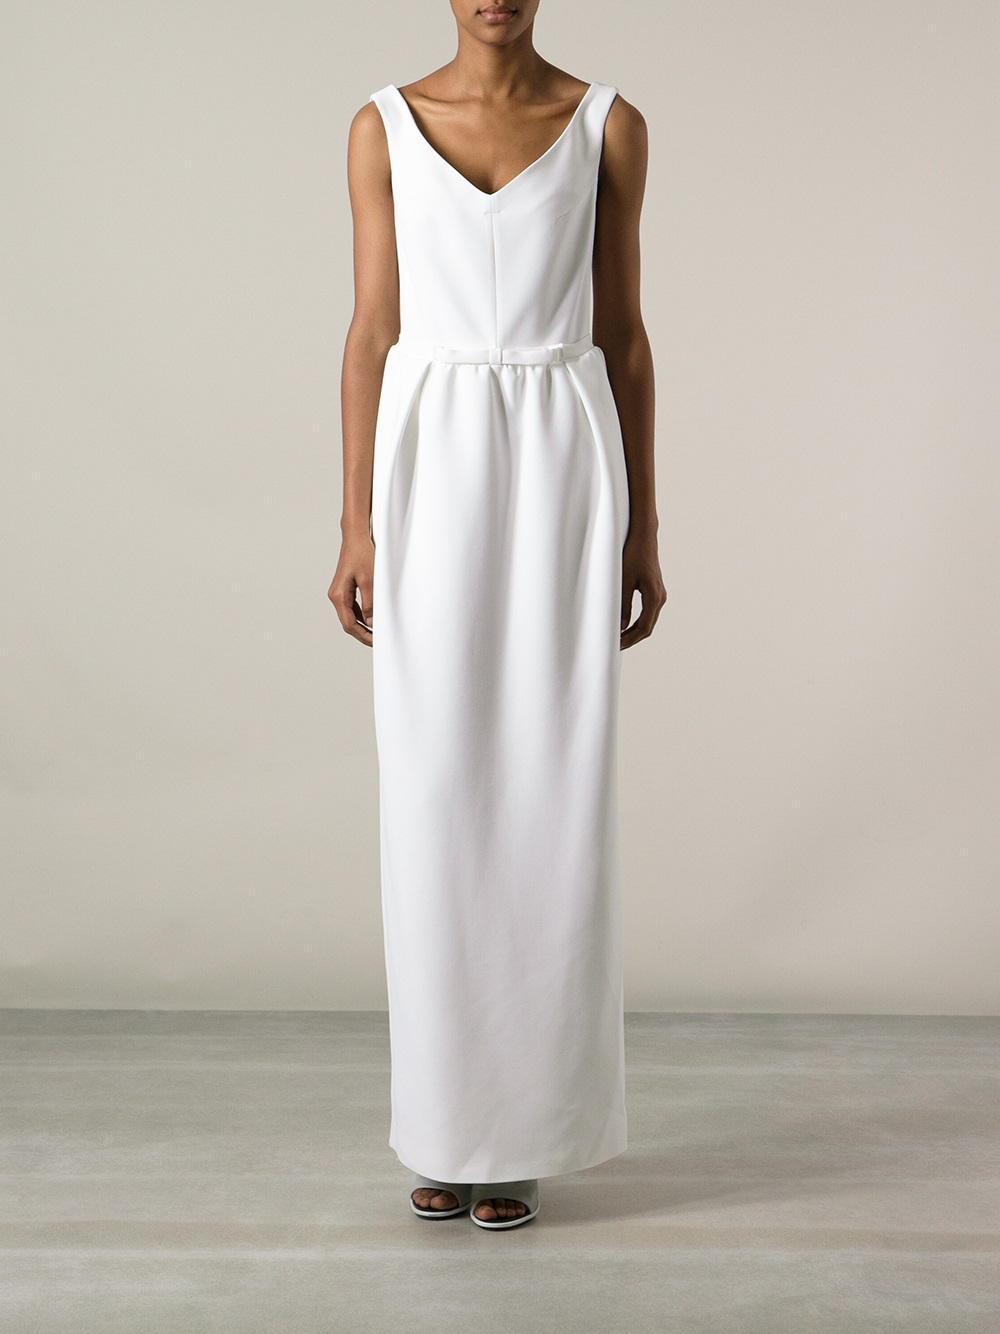 Lyst - Carven Vneck Maxi Dress in White